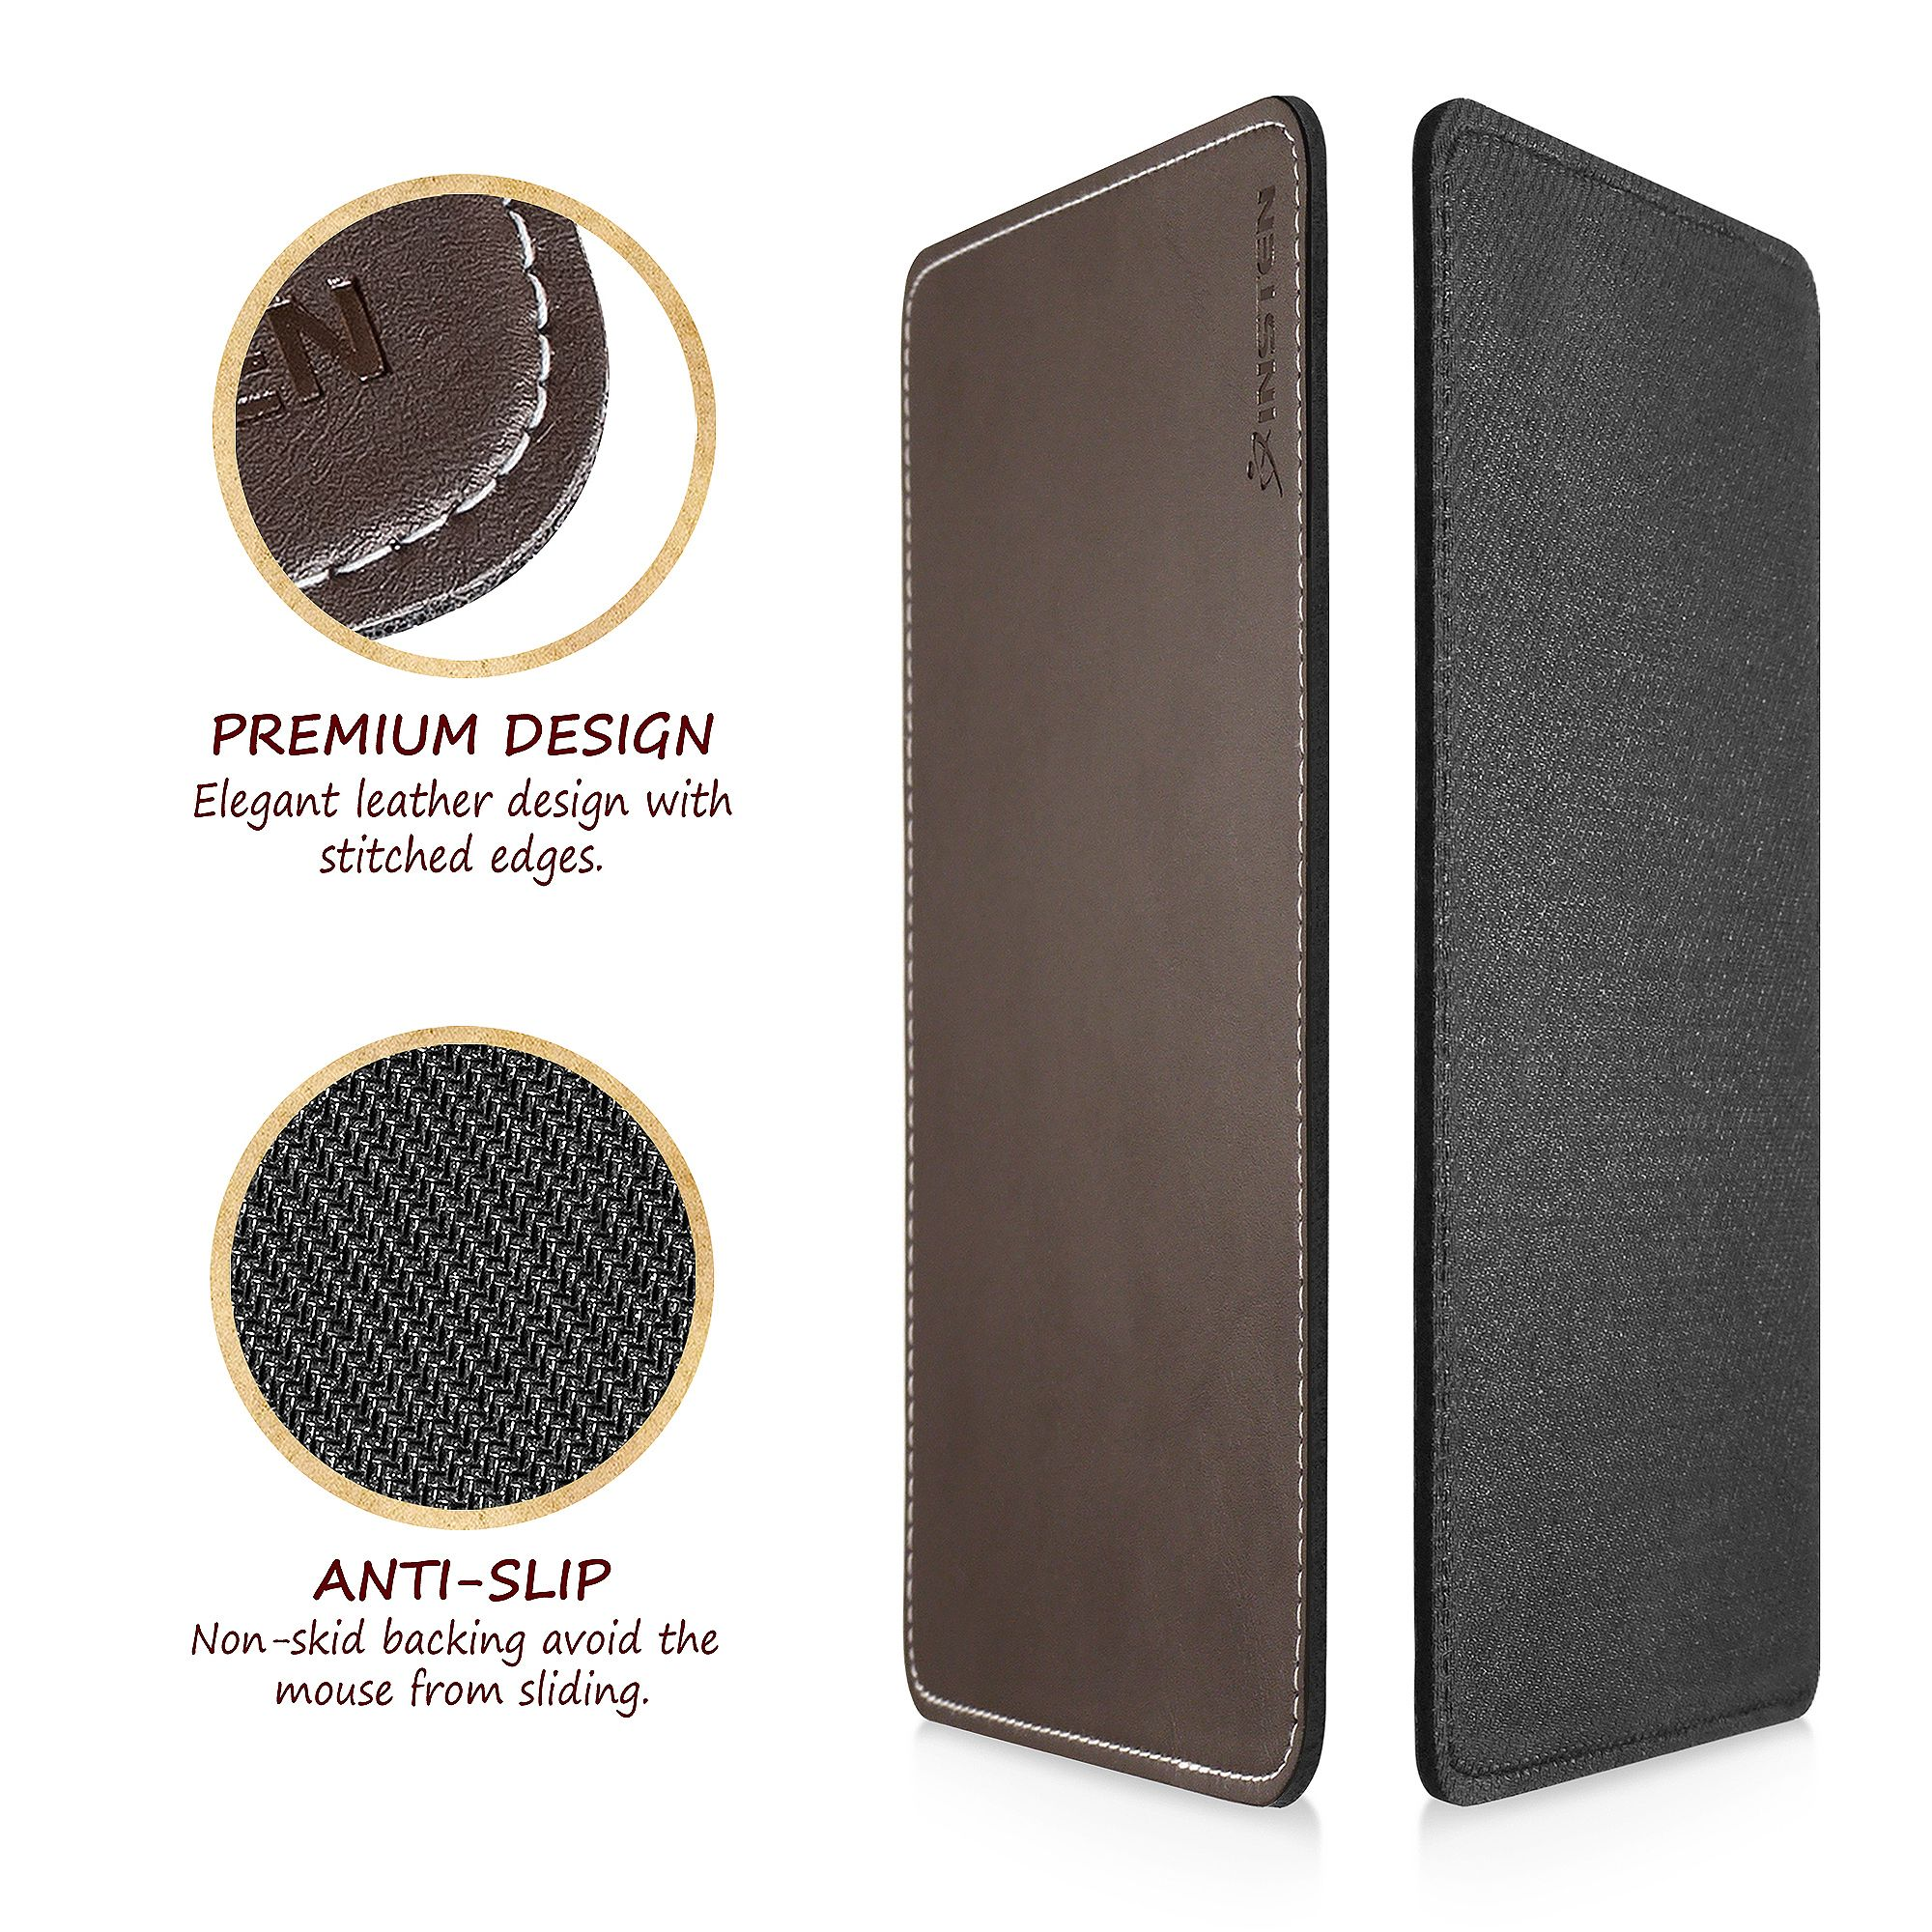 Non Slip /& Elegant Stitched Edges Brown Insten Premium Leather Mouse Pad with Waterproof Coating